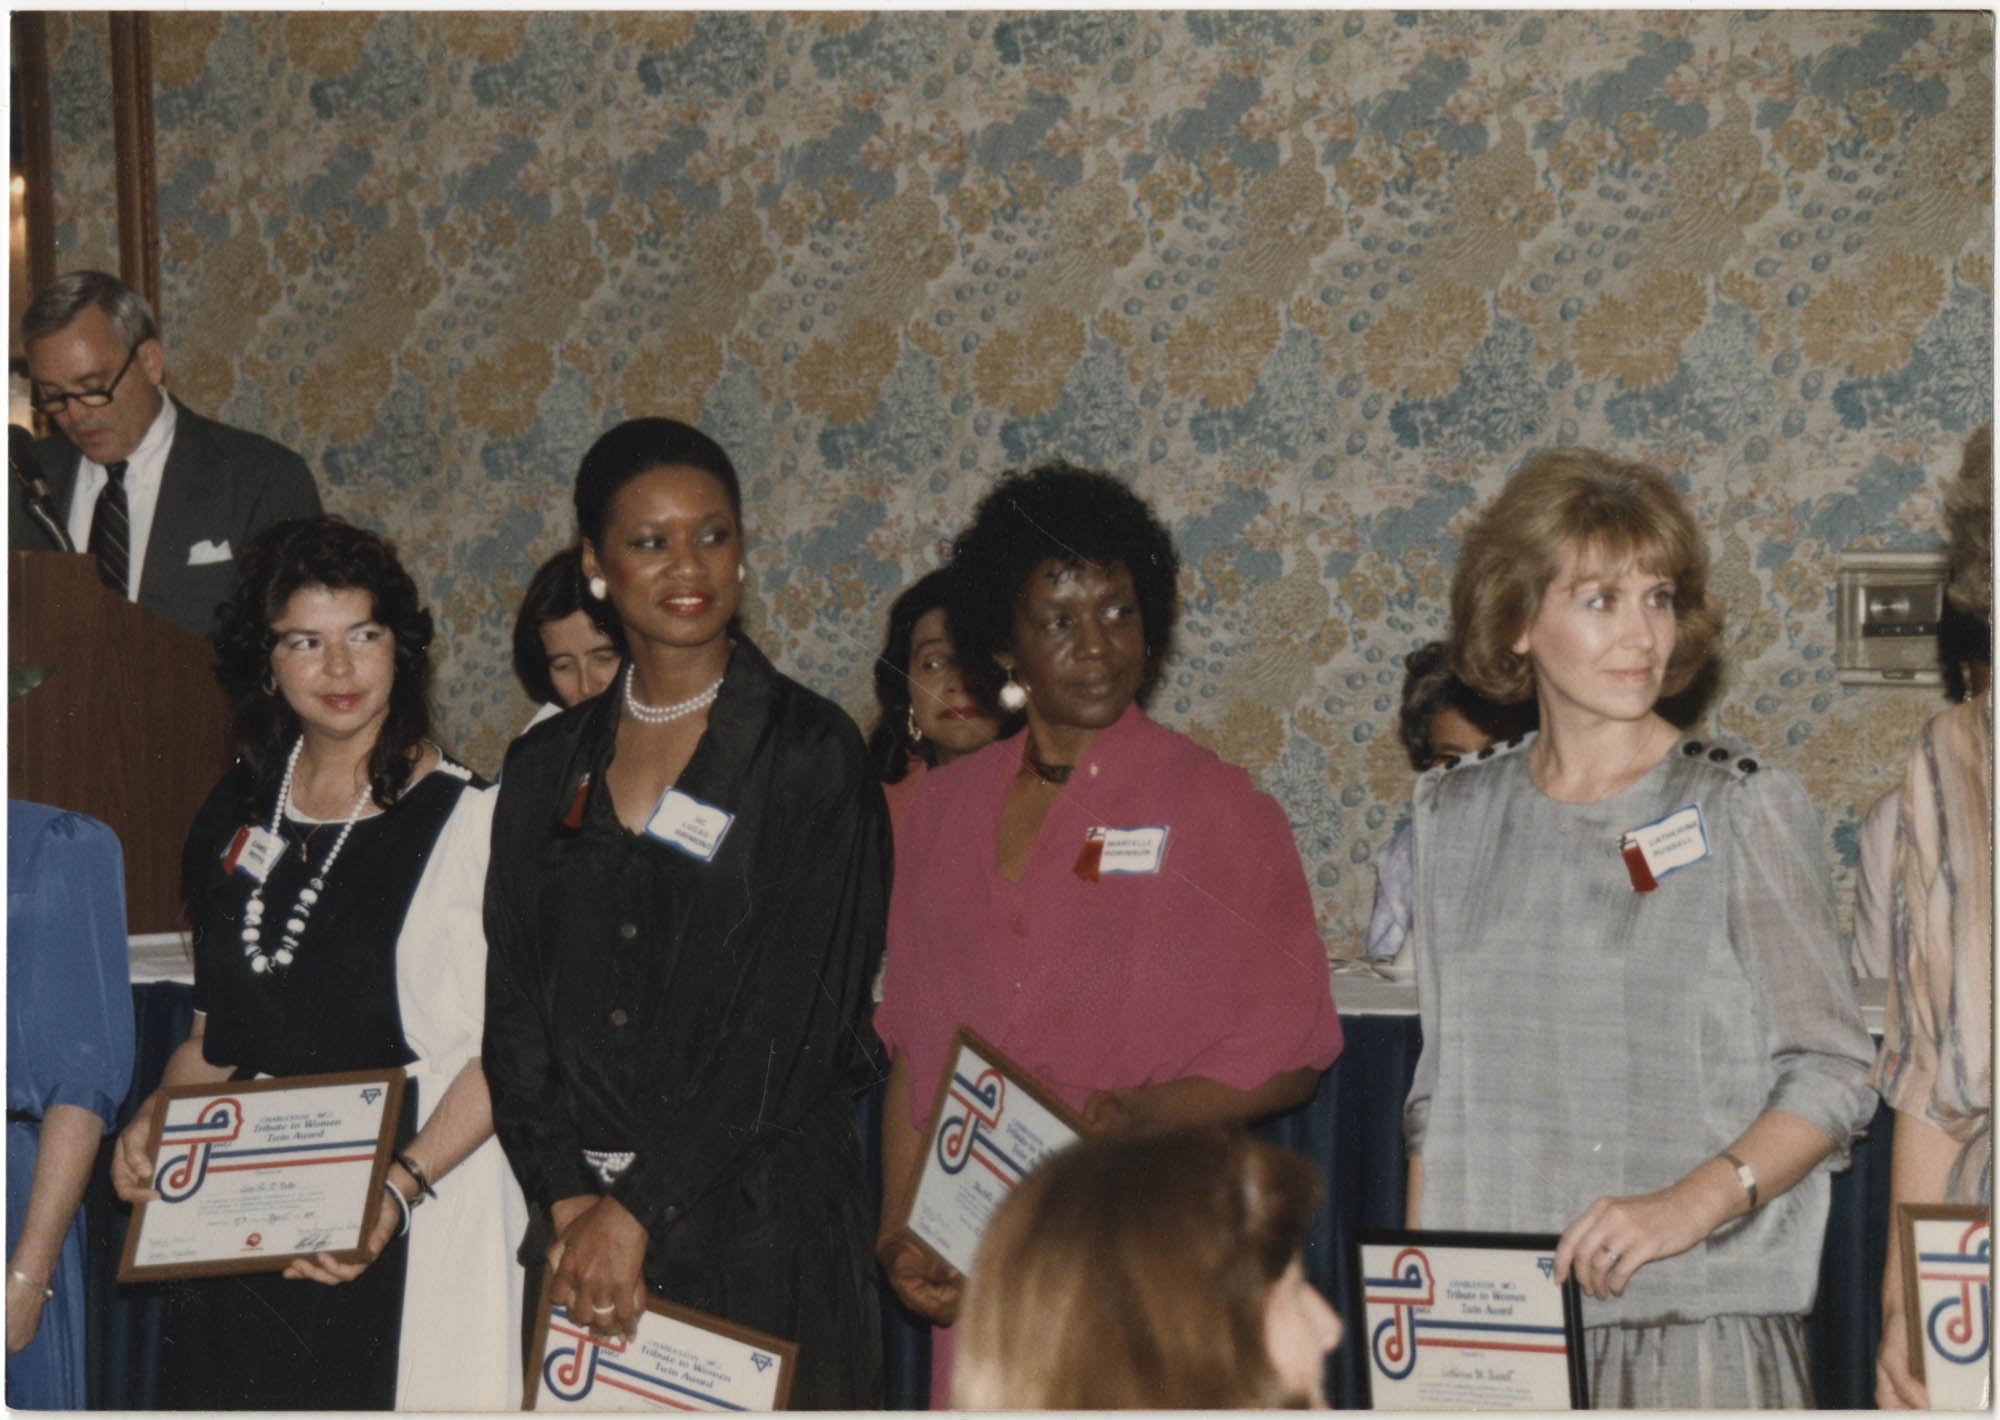 Photograph of Coretta Scott King and Others